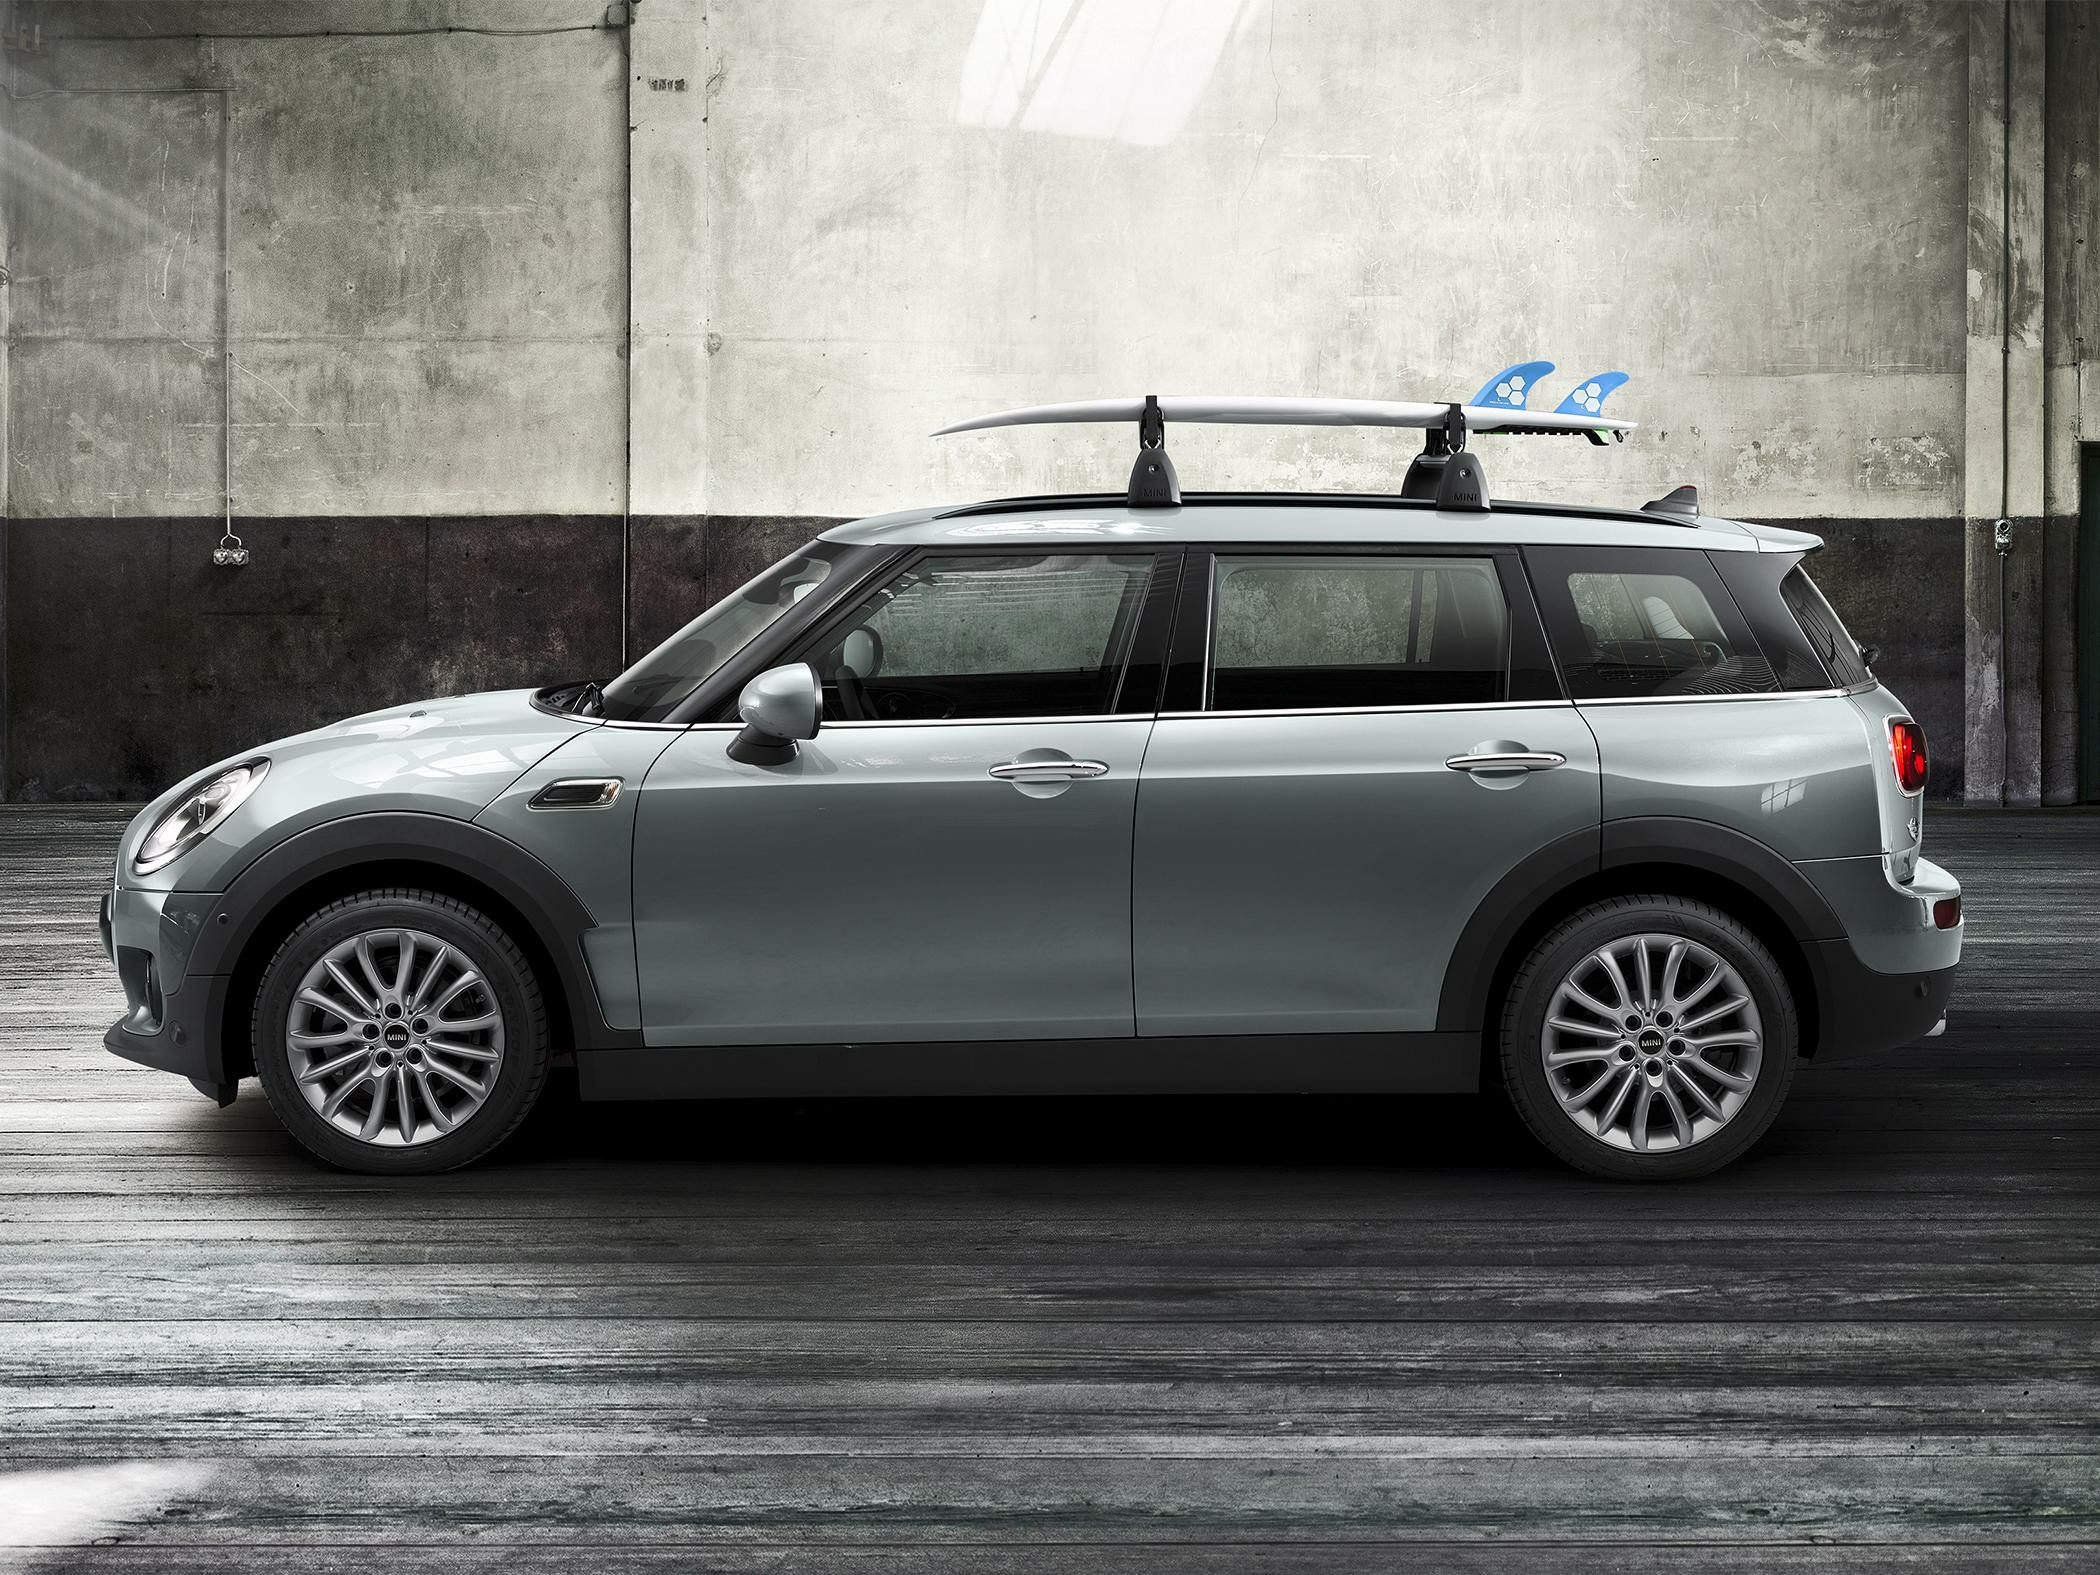 MINI Clubman News, Photos and Buying Information - Autoblog